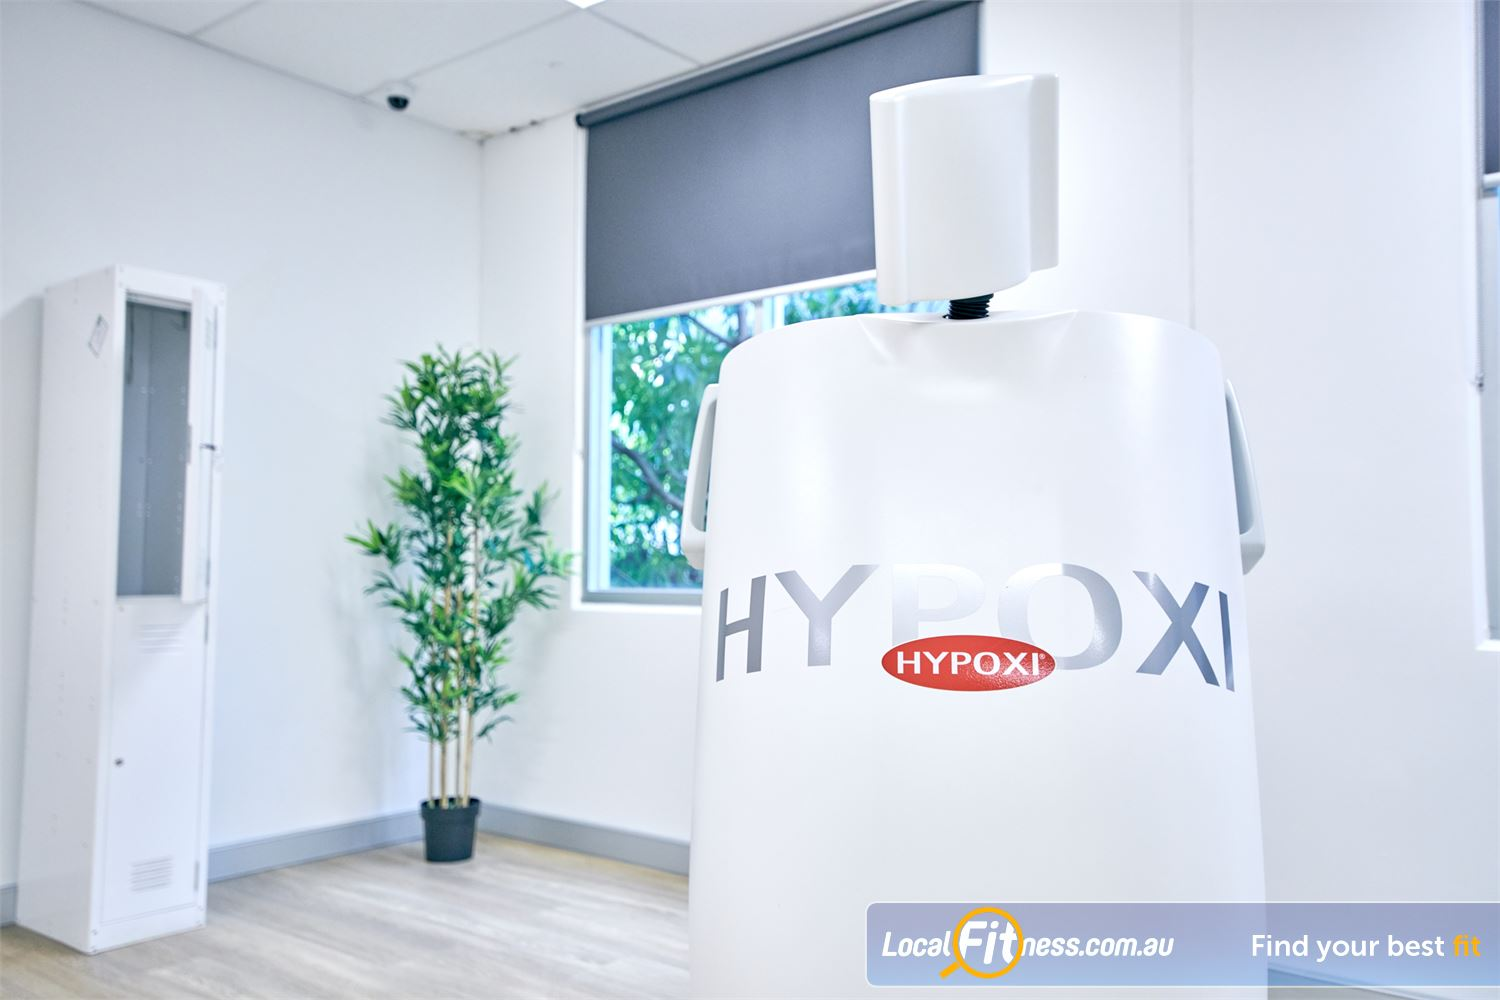 HYPOXI Weight Loss Near Manly Vale Our advanced HYPOXI machines will monitor your heart rate, skin temperature during treatment.